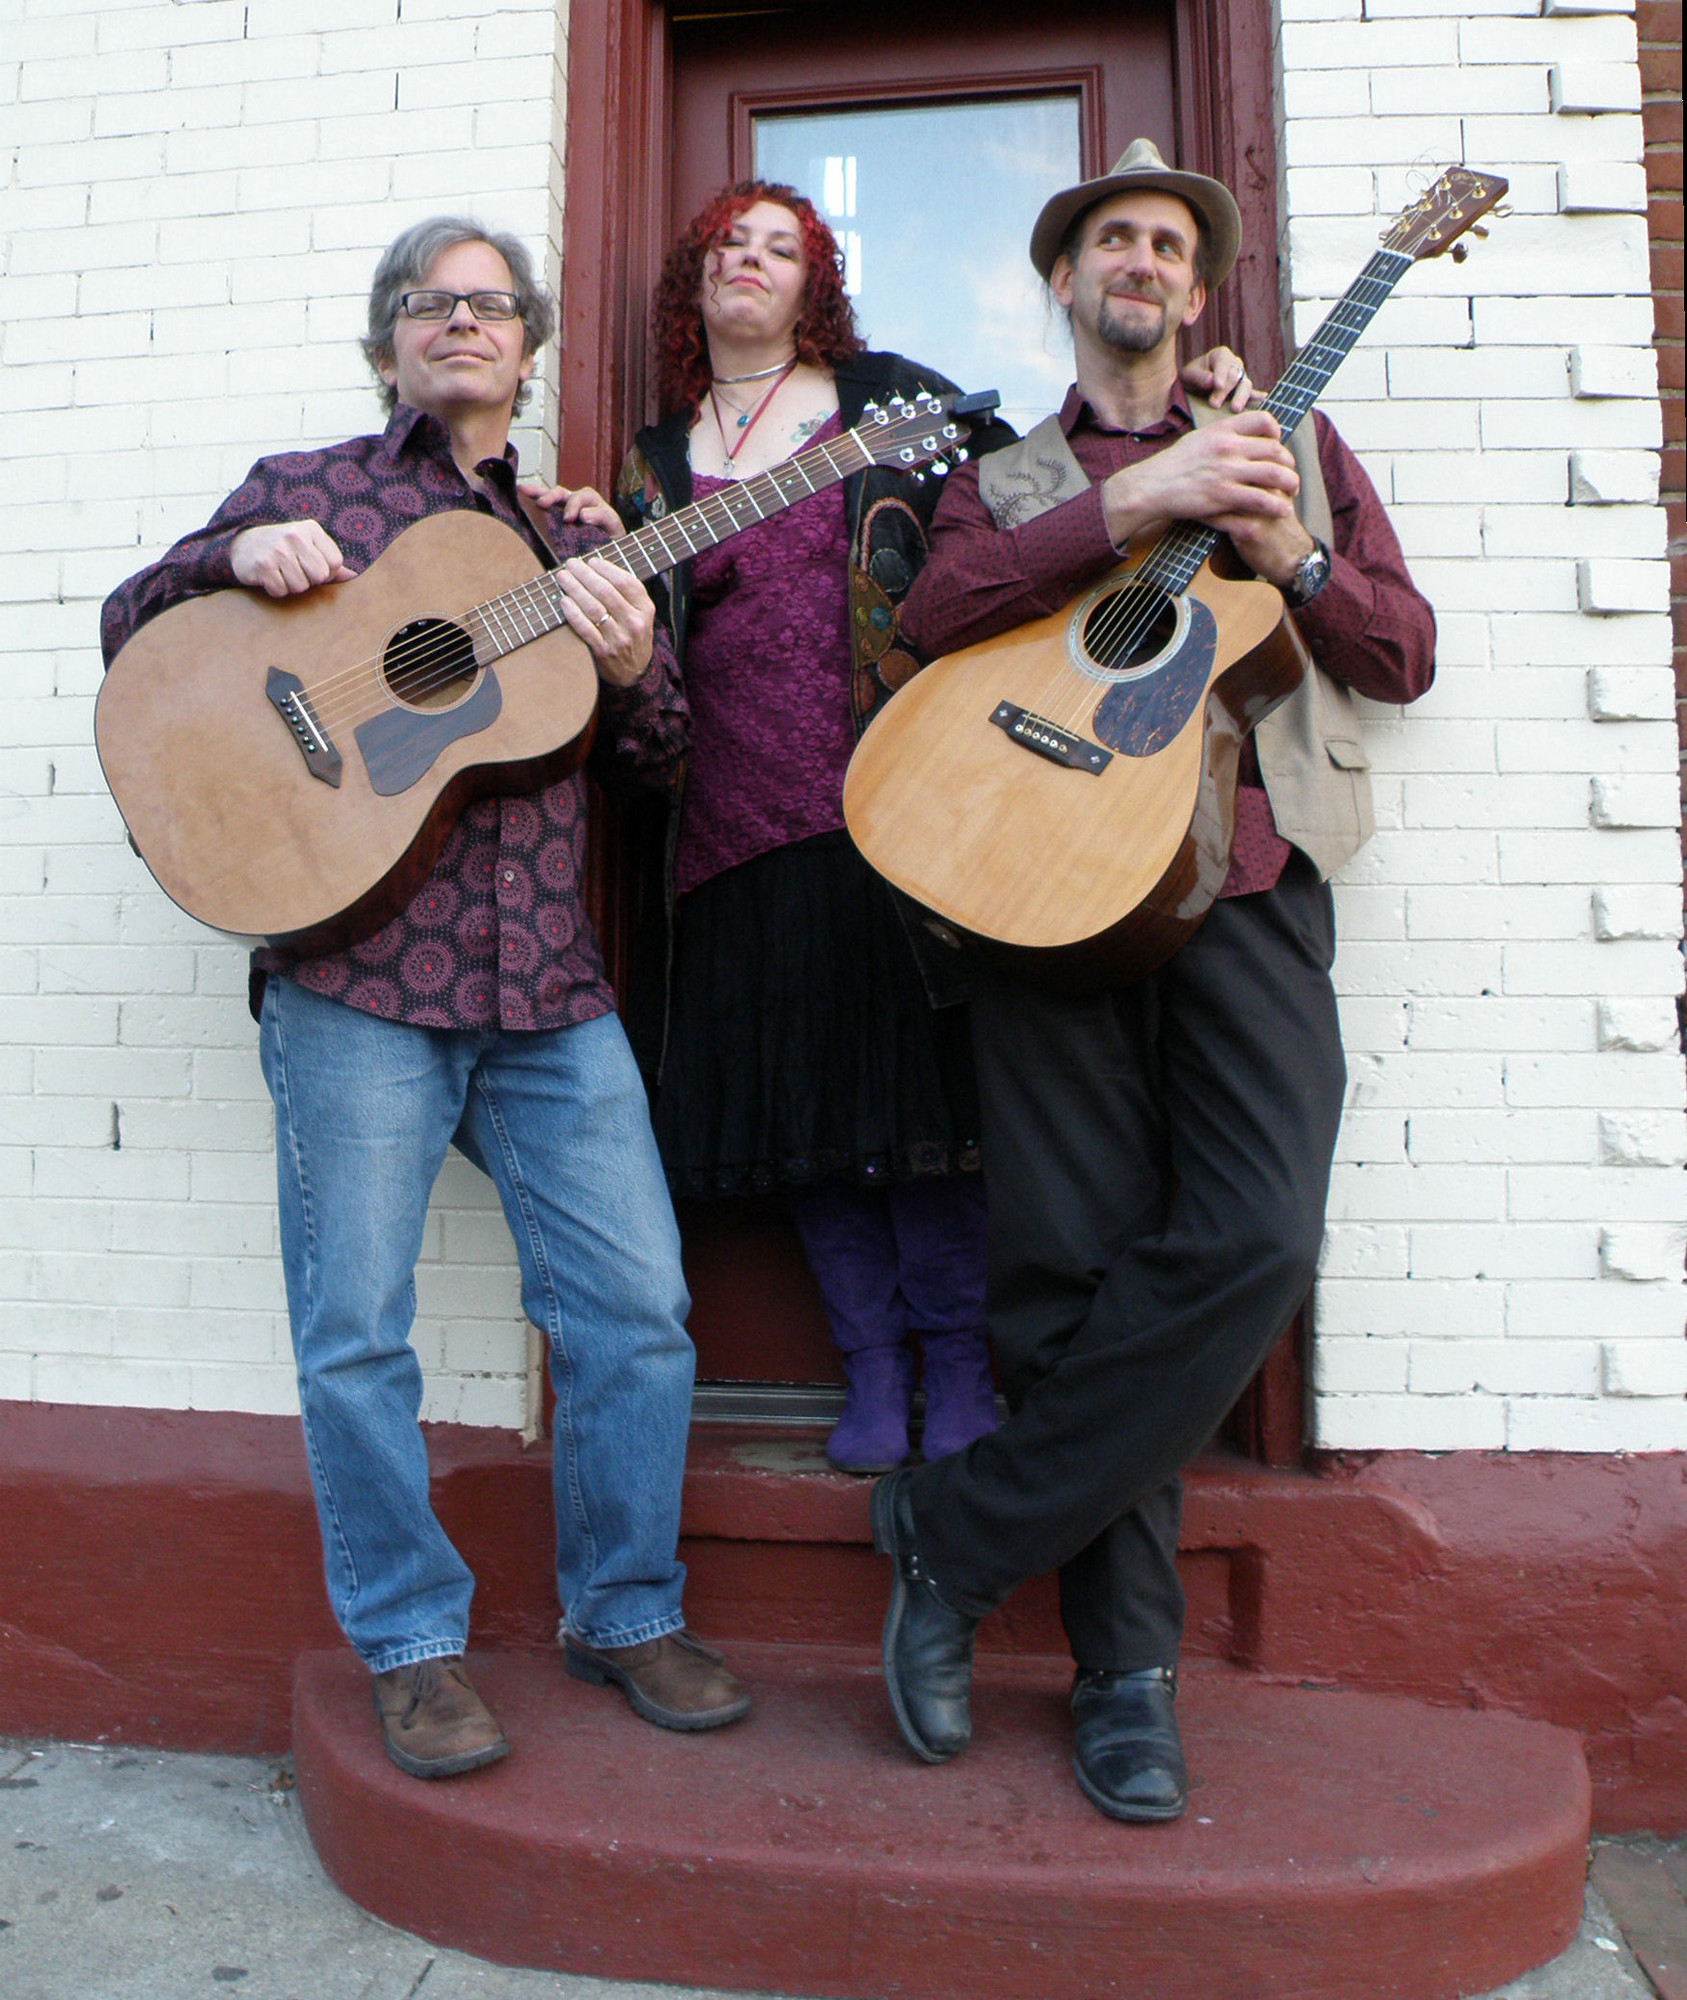 Stuart Markus, right, a Malverne resident, is leader of the folk group, Gathering Time, which will headline at the Crossroads Farm Folk Festival.